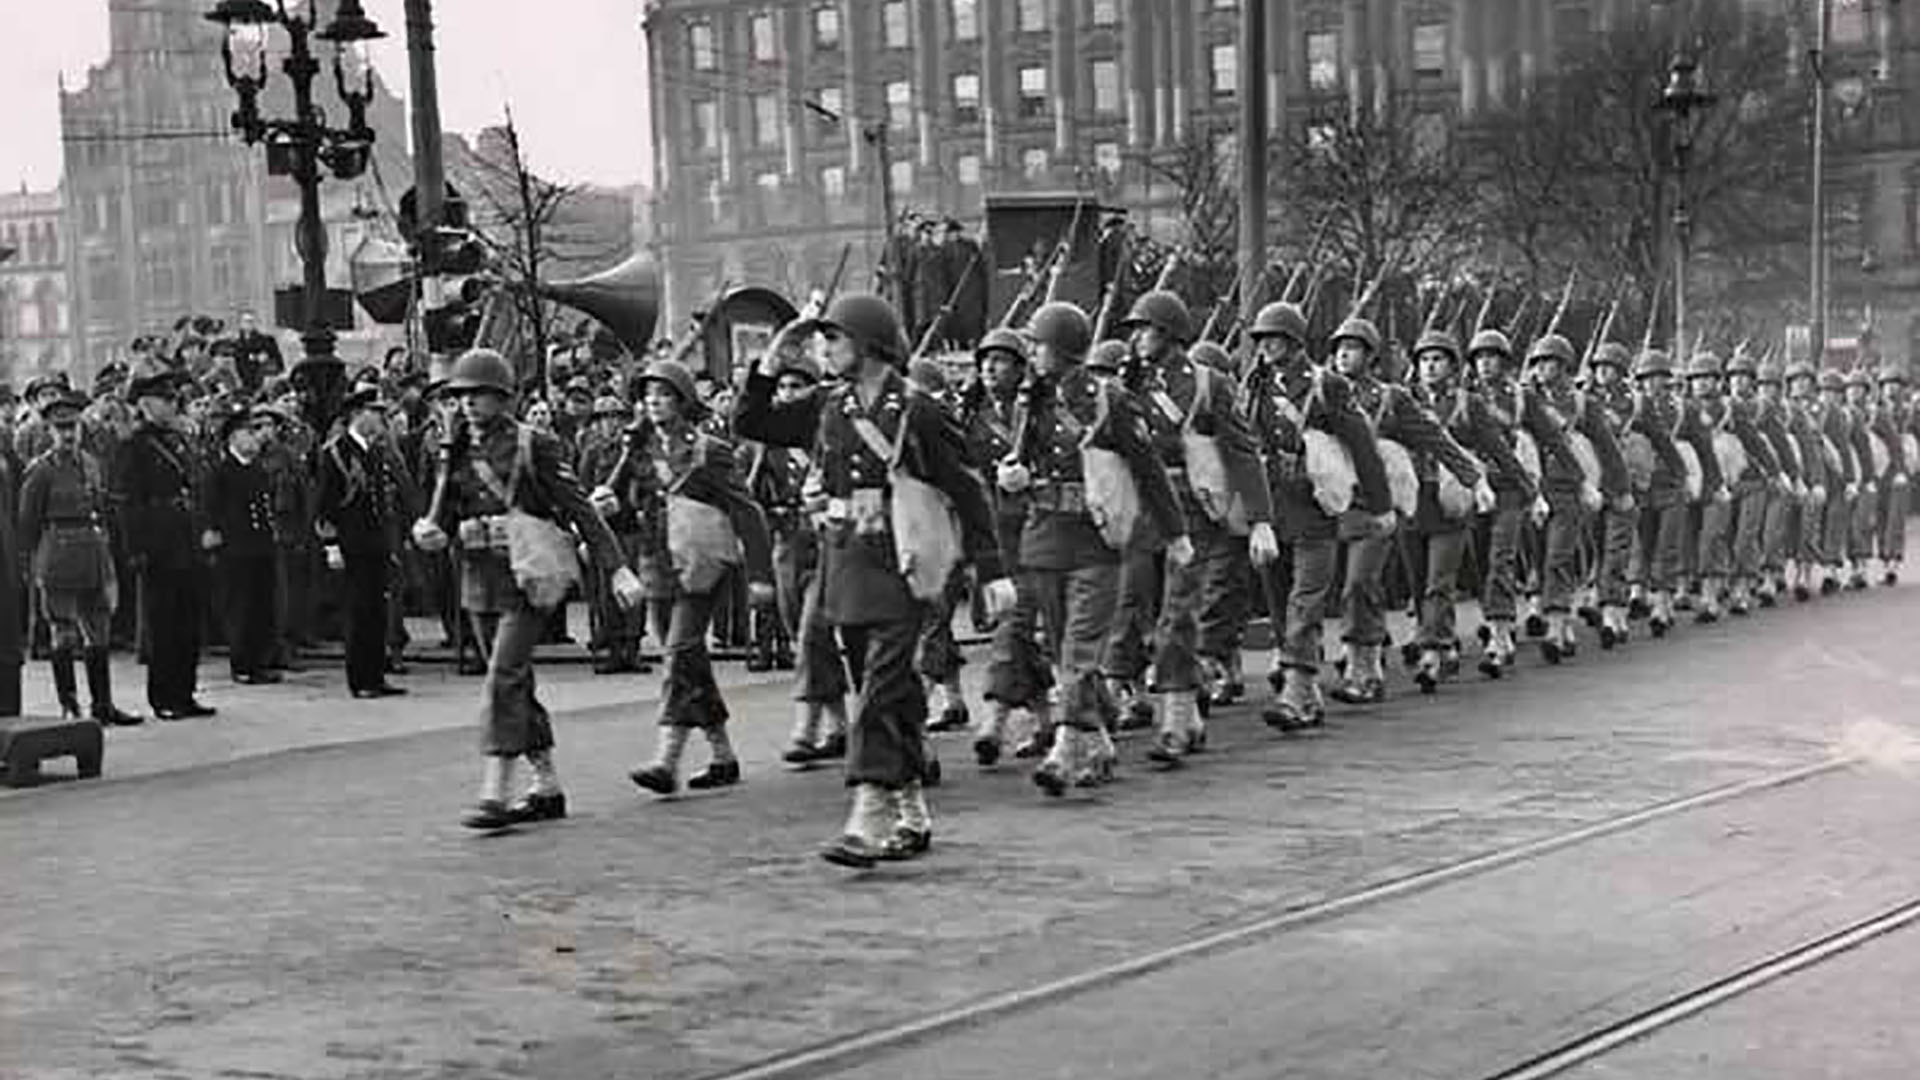 US Army in Belfast, Co. Antrim